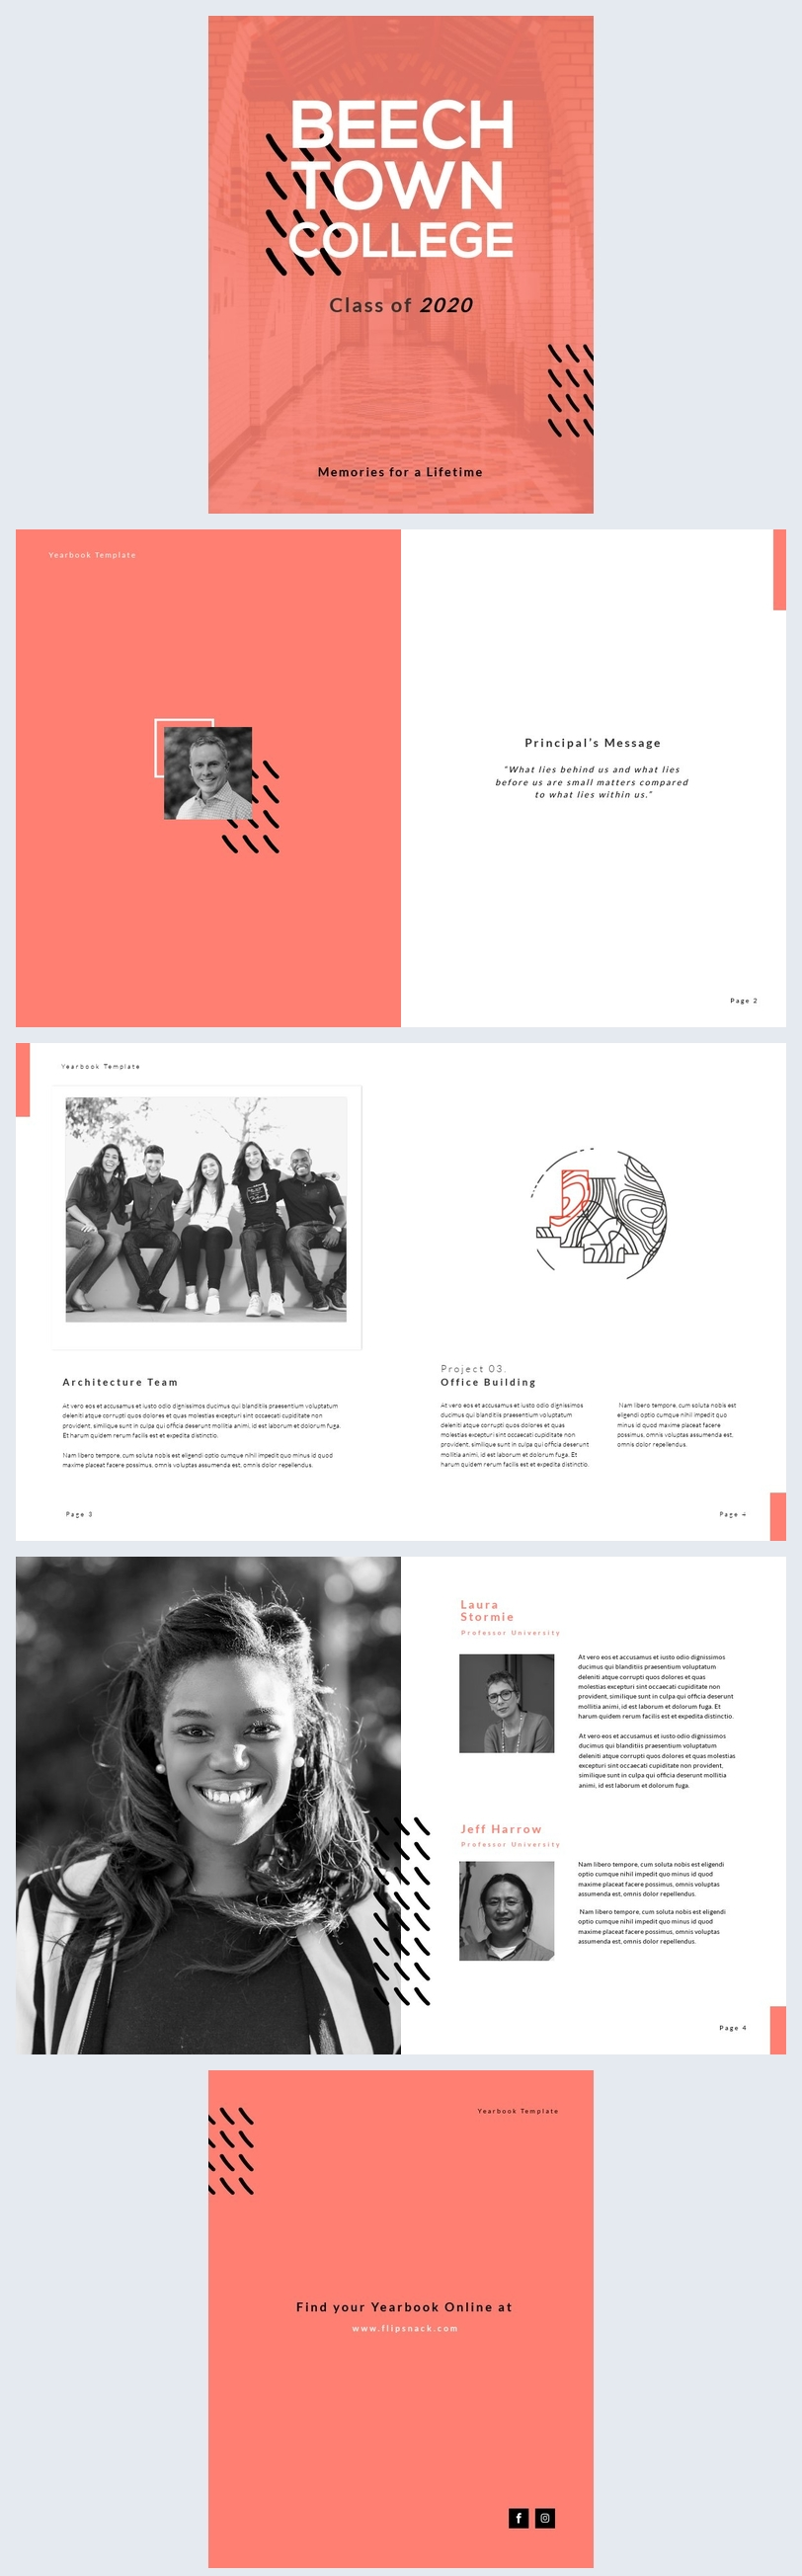 Yearbook Layout Design